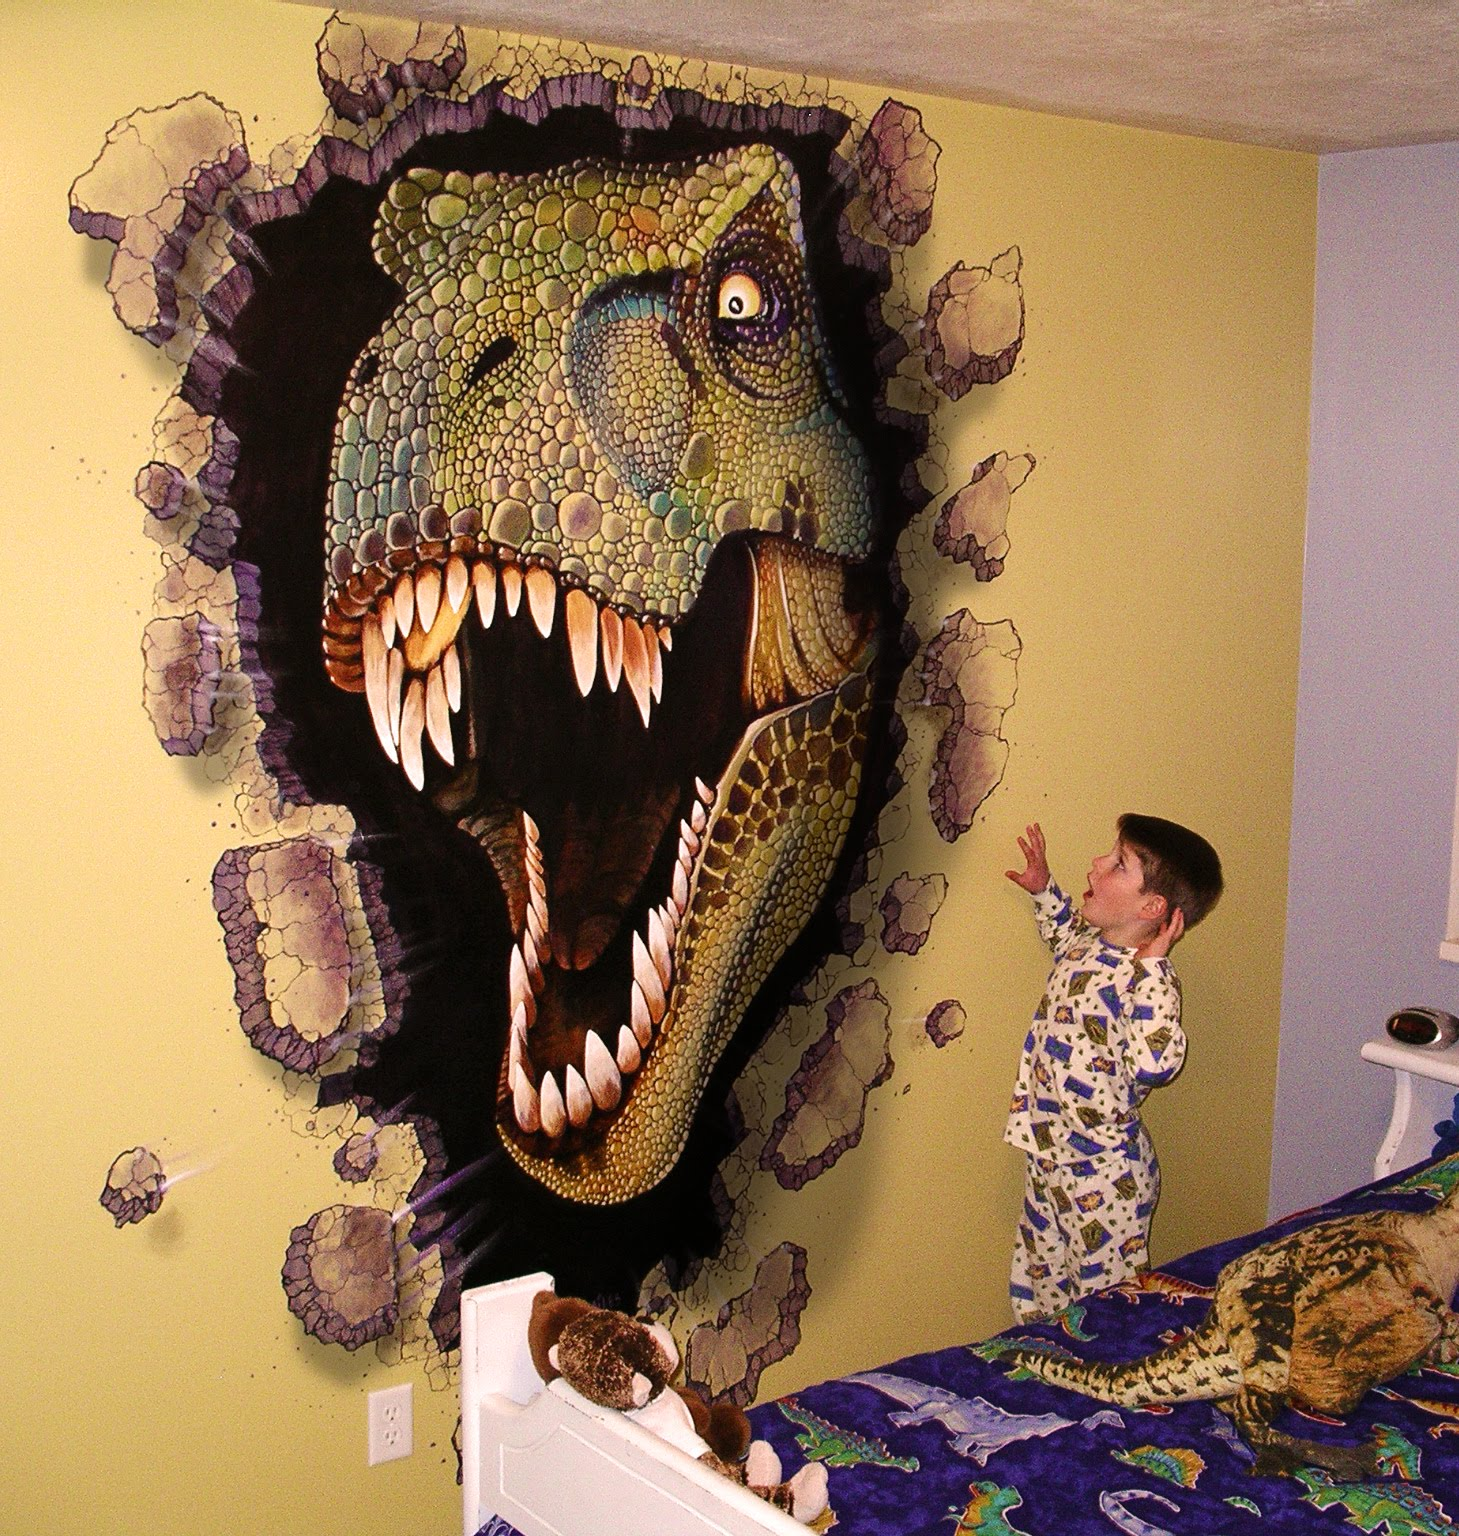 Miles woods art wall murals for T rex bedroom decor